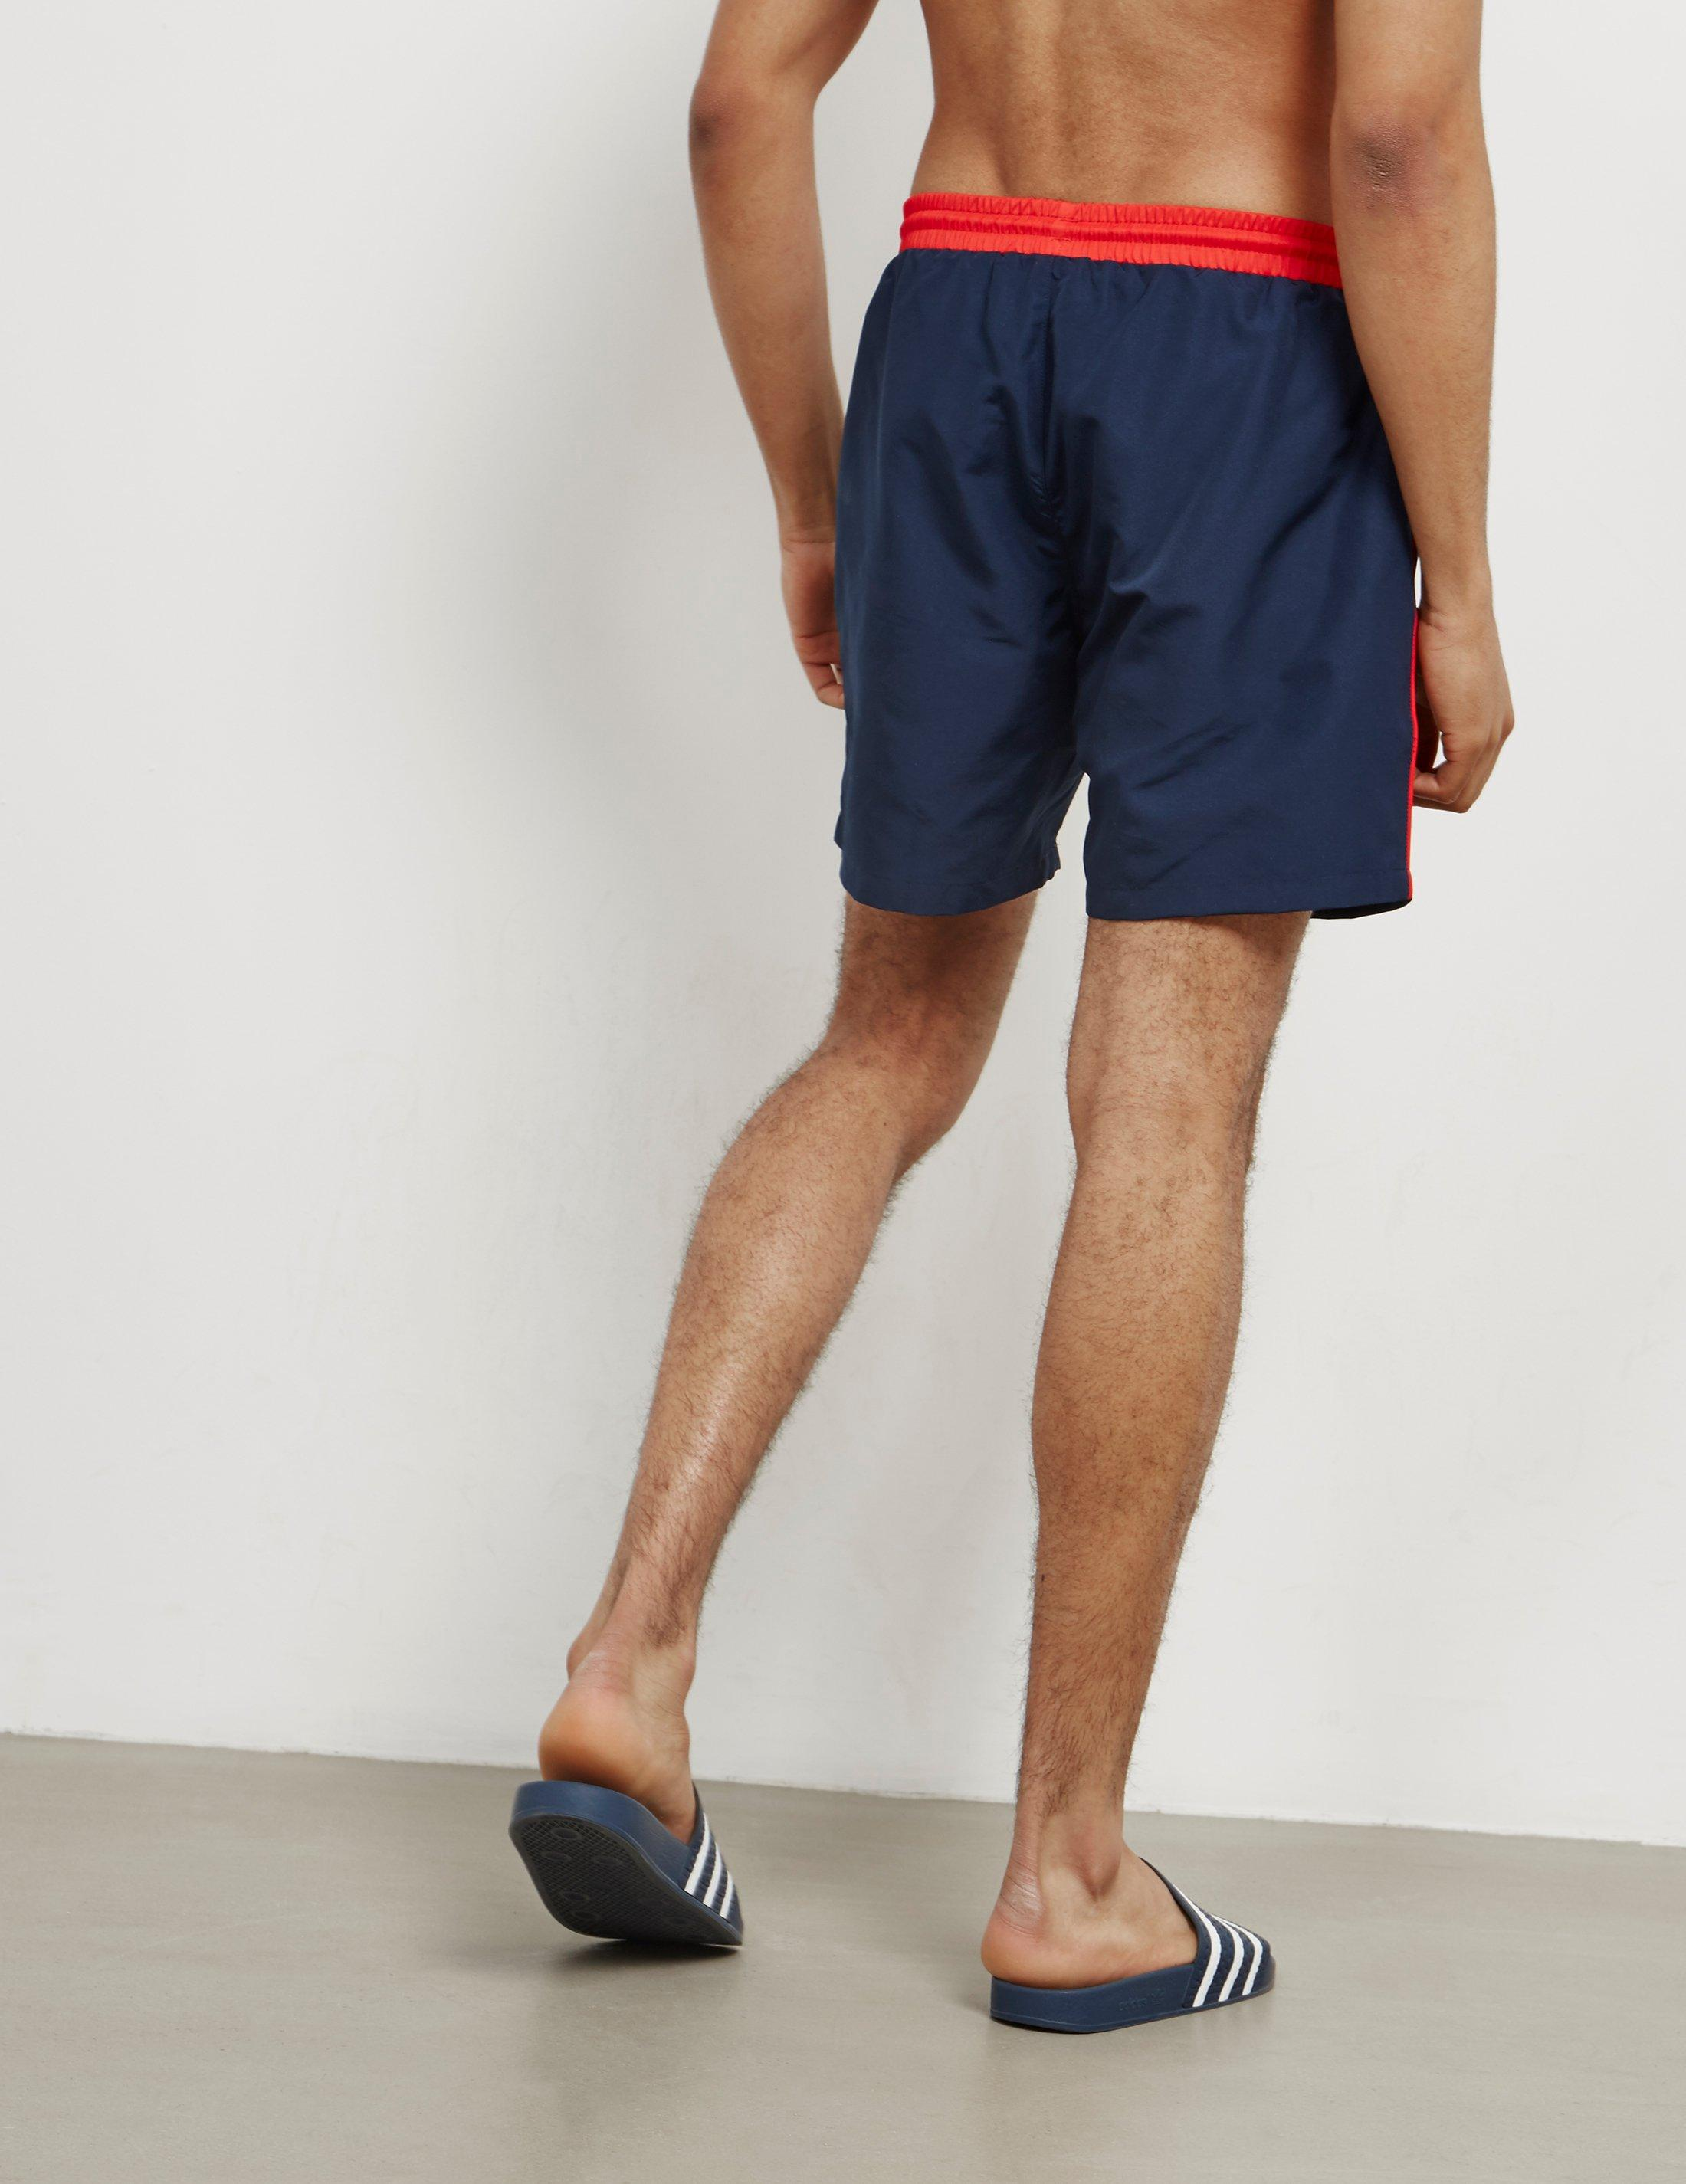 951be415c8f40 BOSS Mens Starfish Swim Shorts Navy Blue in Blue for Men - Lyst